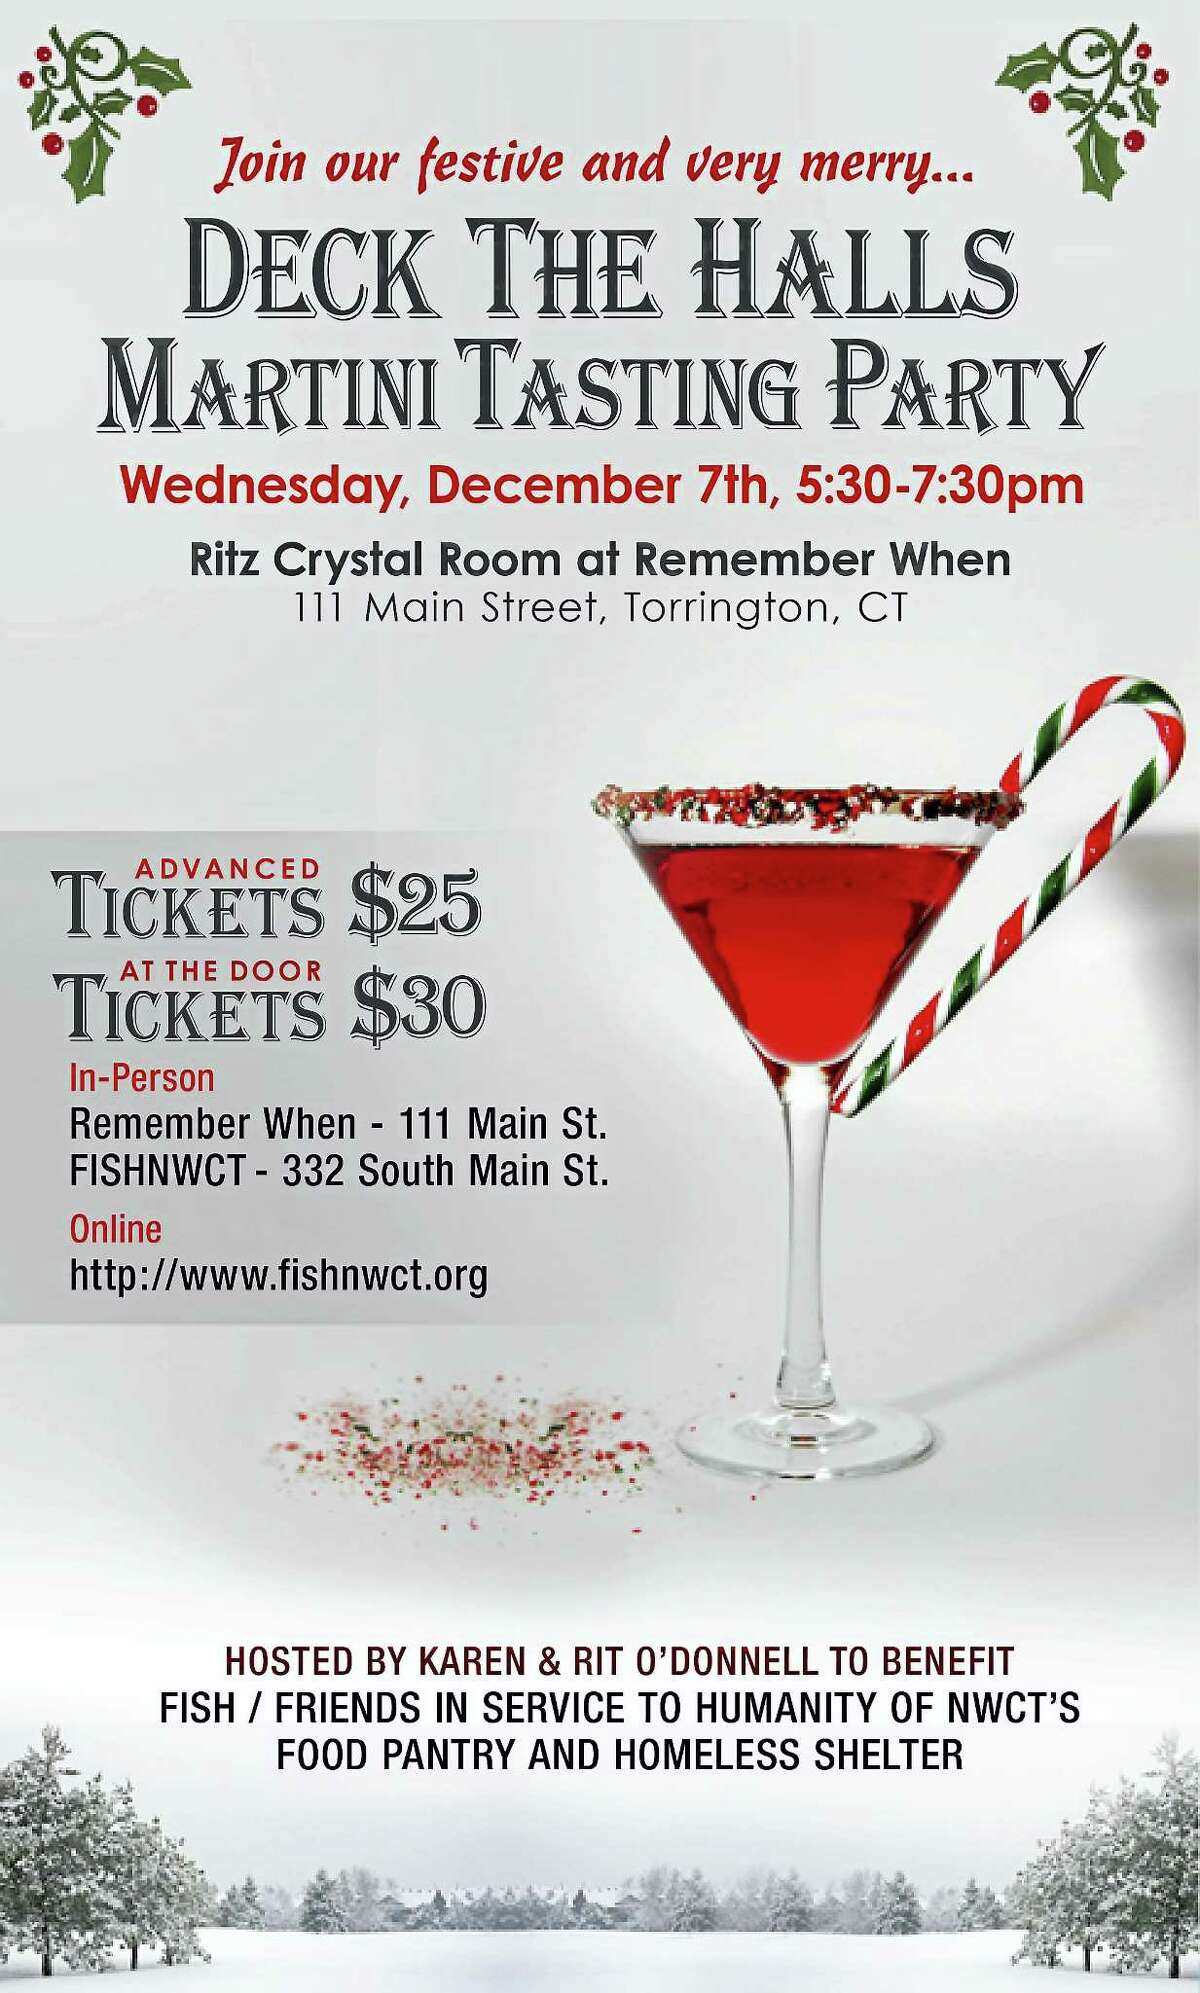 Contributed photoThe flyer for the upcoming Deck the Halls Martini Tasting Party, which will be held at the Ritz Crystal Room at Remember When on Main Street, to benefit FISH's food pantry and homeless shelter.